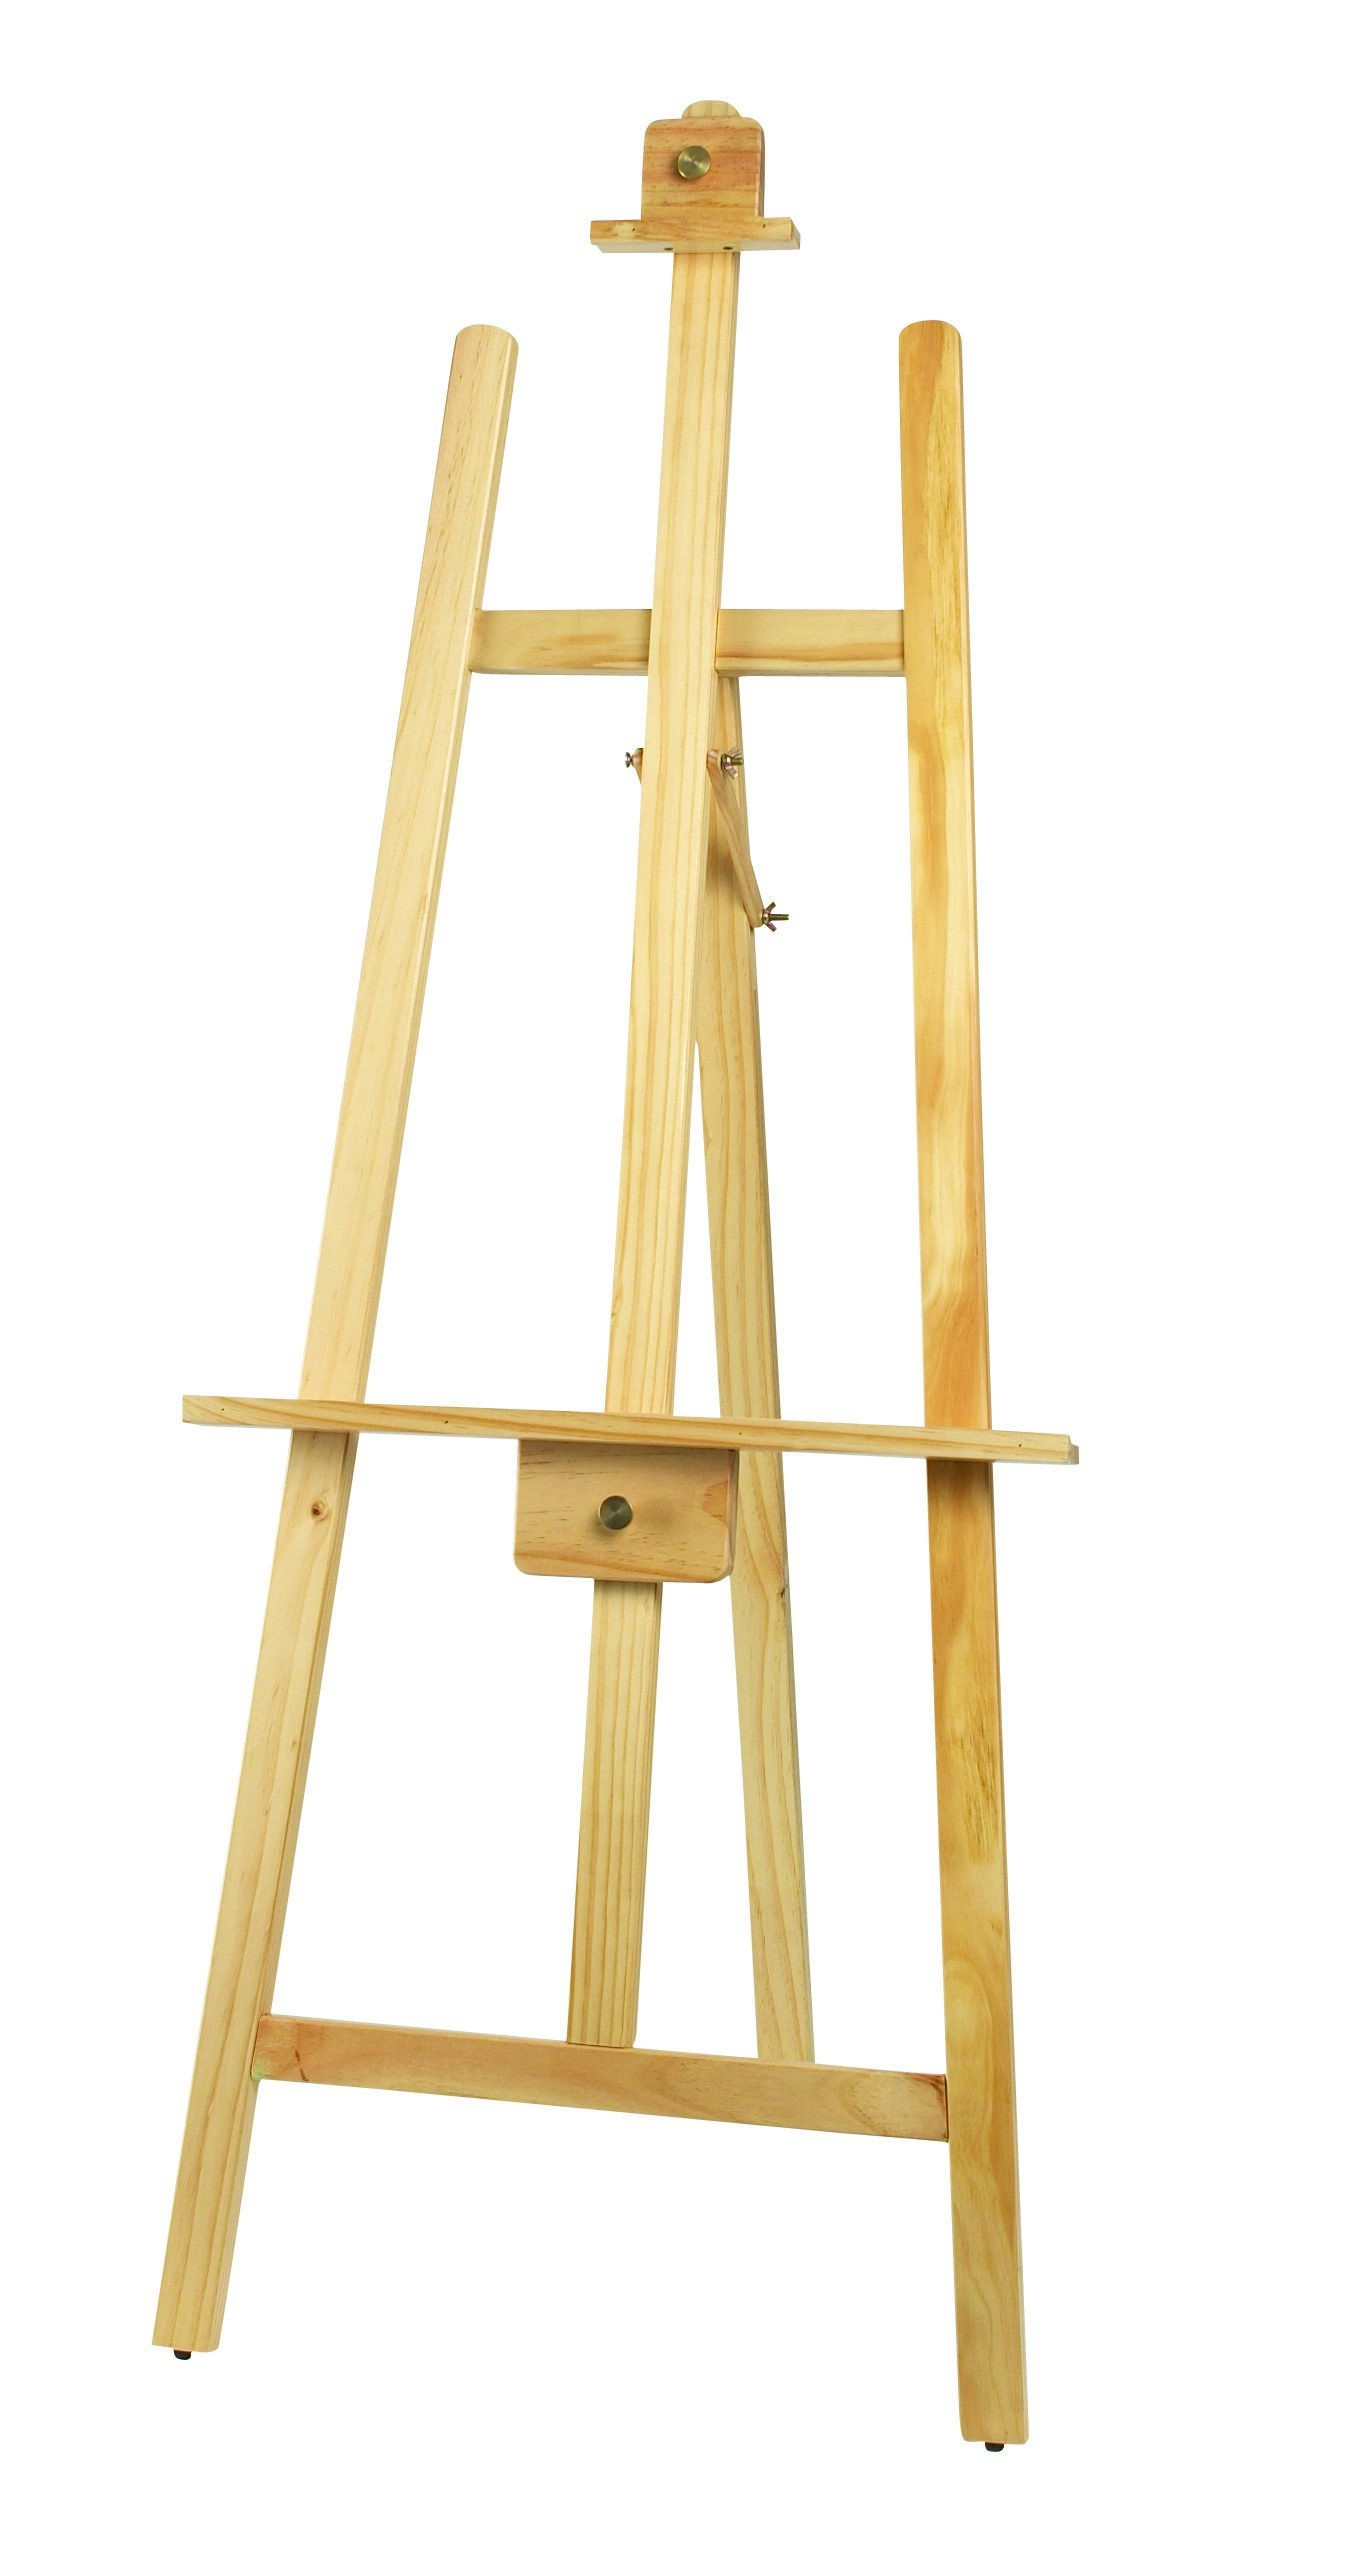 "Winco MBBE-1 Wooden Display Easel, Natural Color 62"" x 24"""